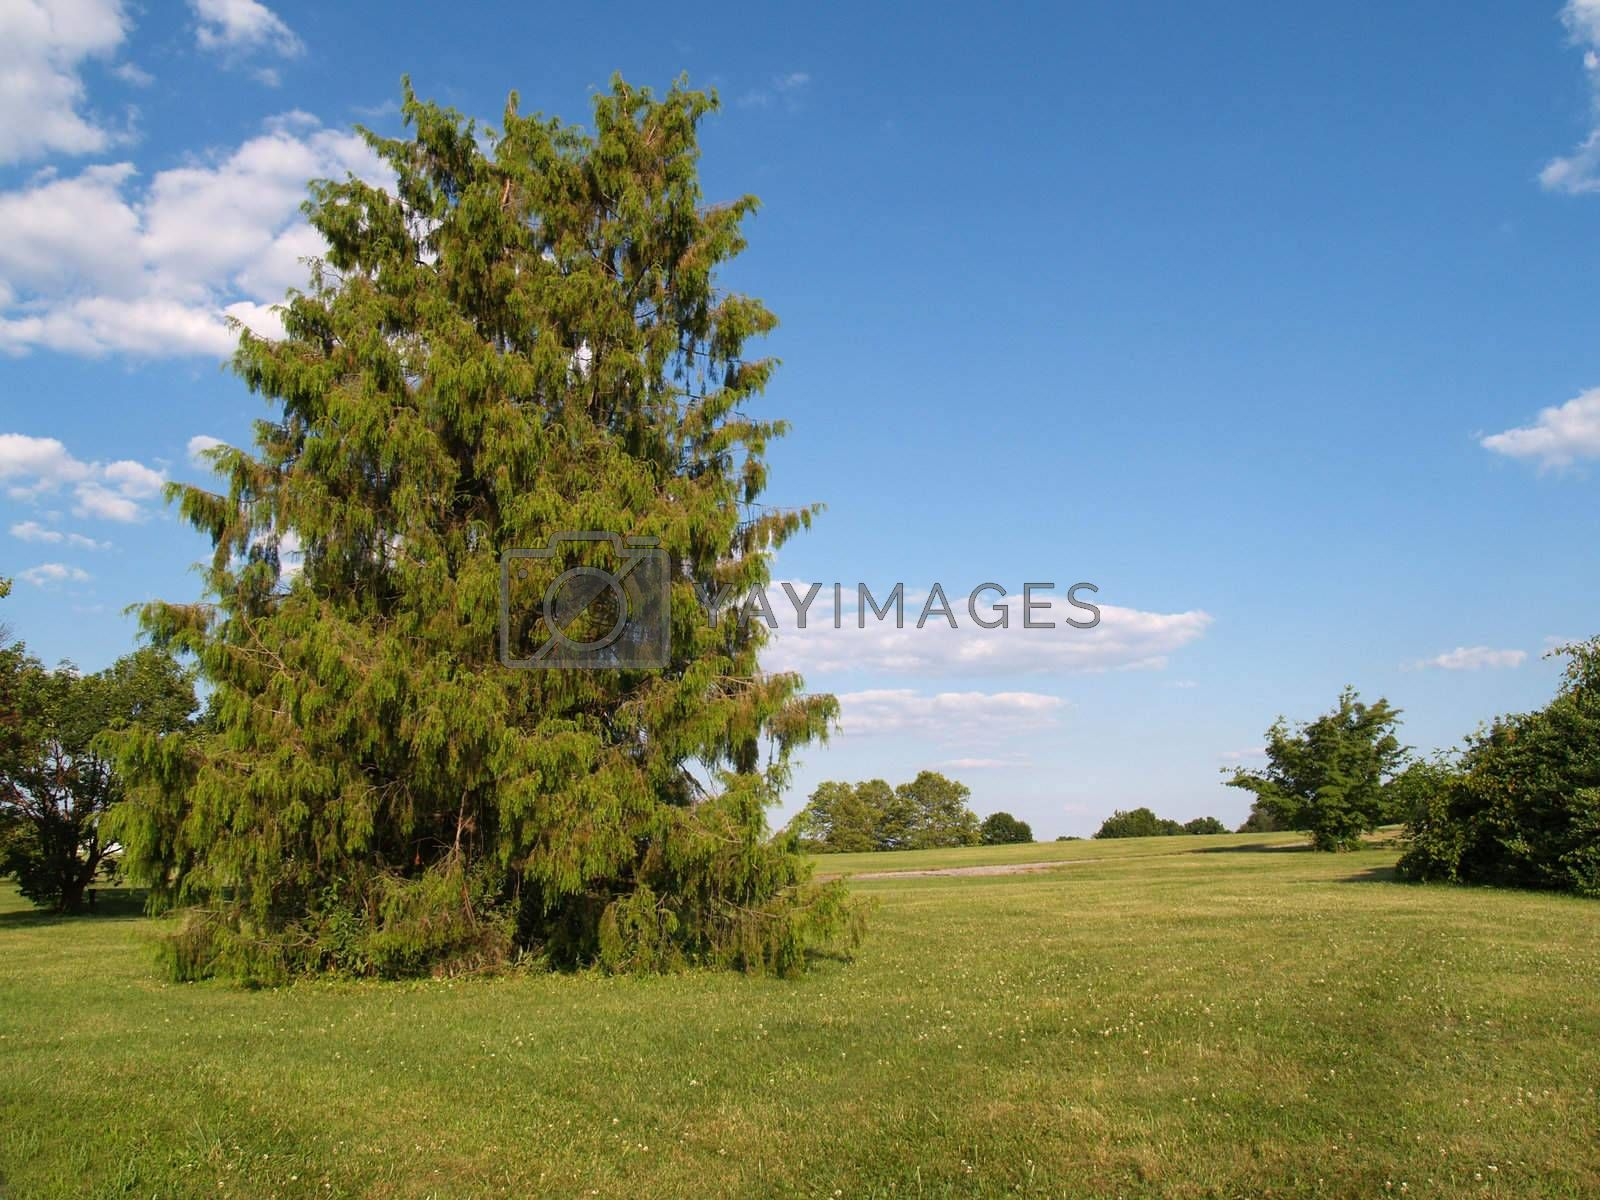 large evergreen tree in a park by a grassy lawn